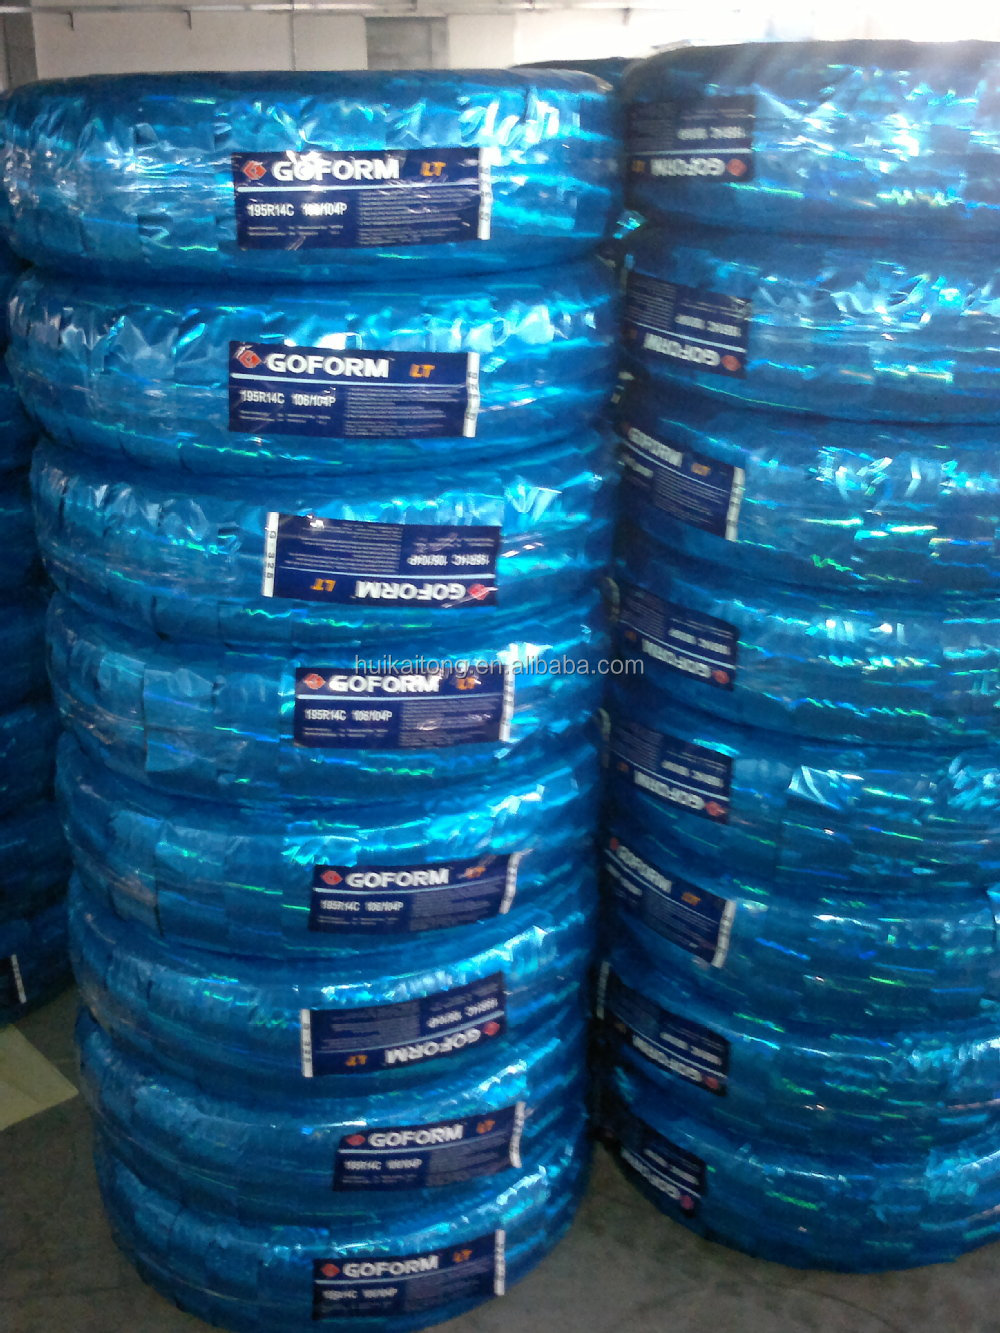 GOFORM china new winter snow tires LT650R16 LT700R16, View winter ...